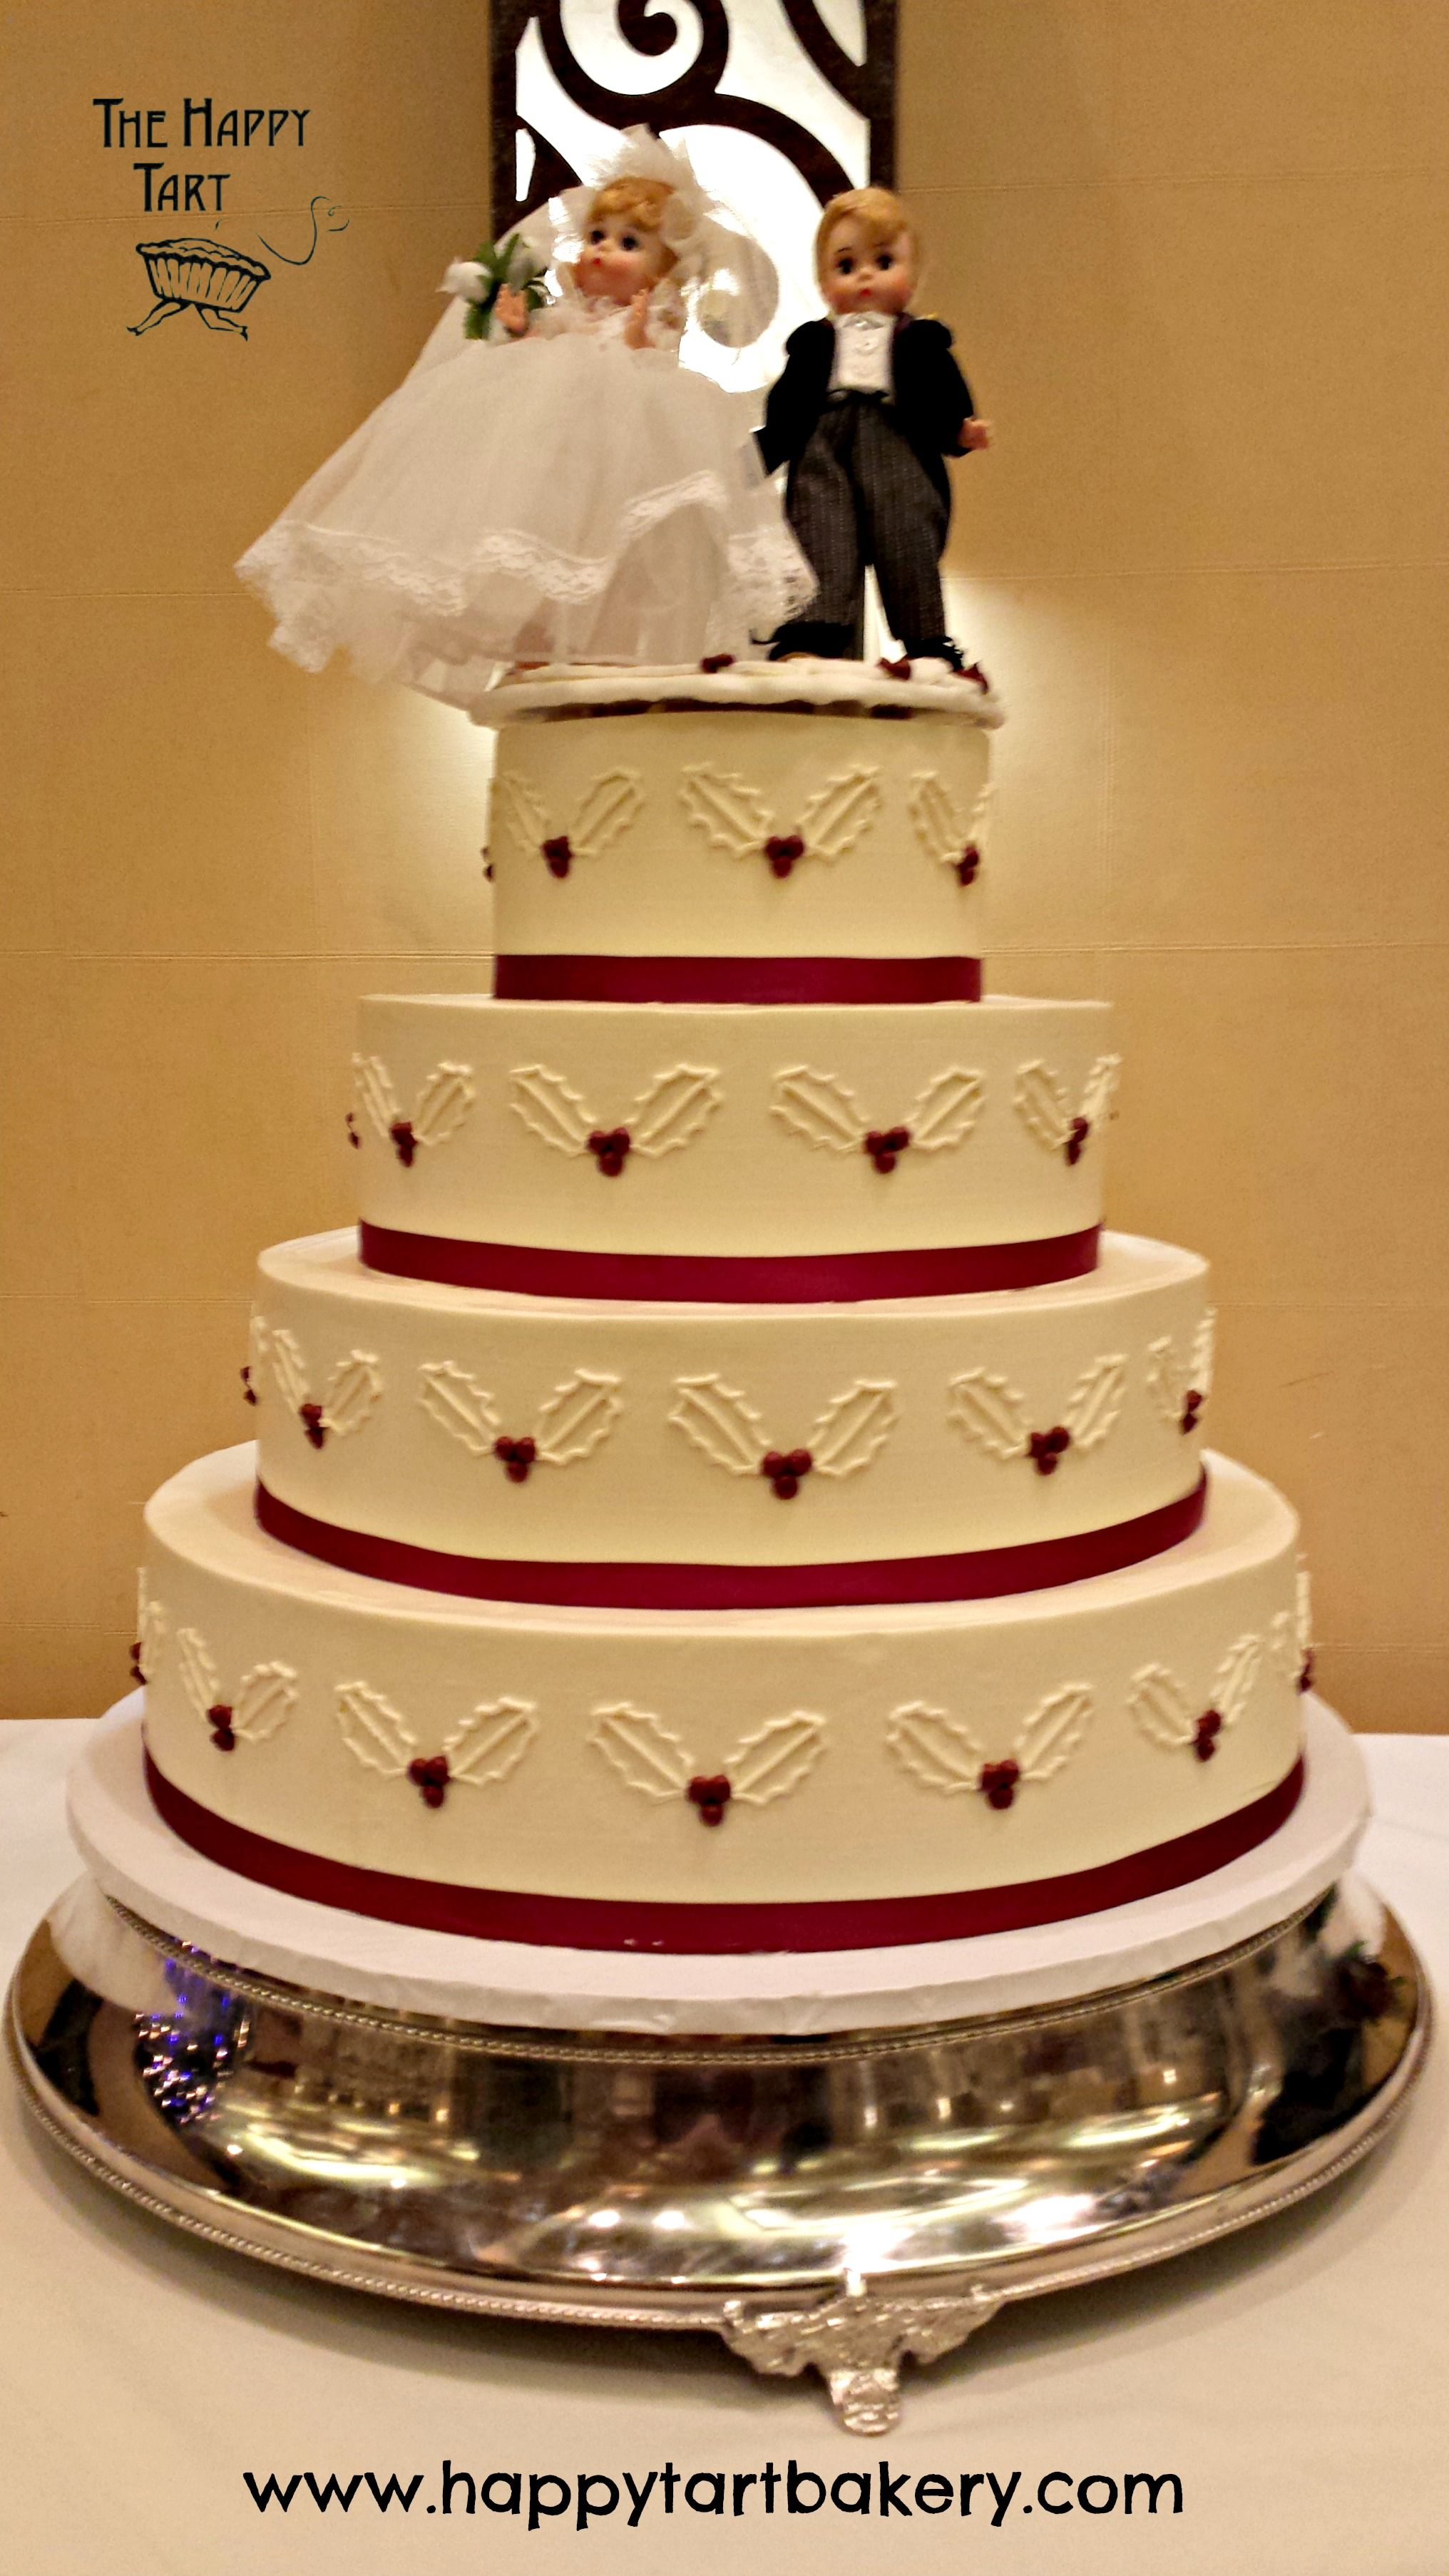 Gluten Free Ercream Wedding Cake With Holly Leaves And Crimson Ribbon